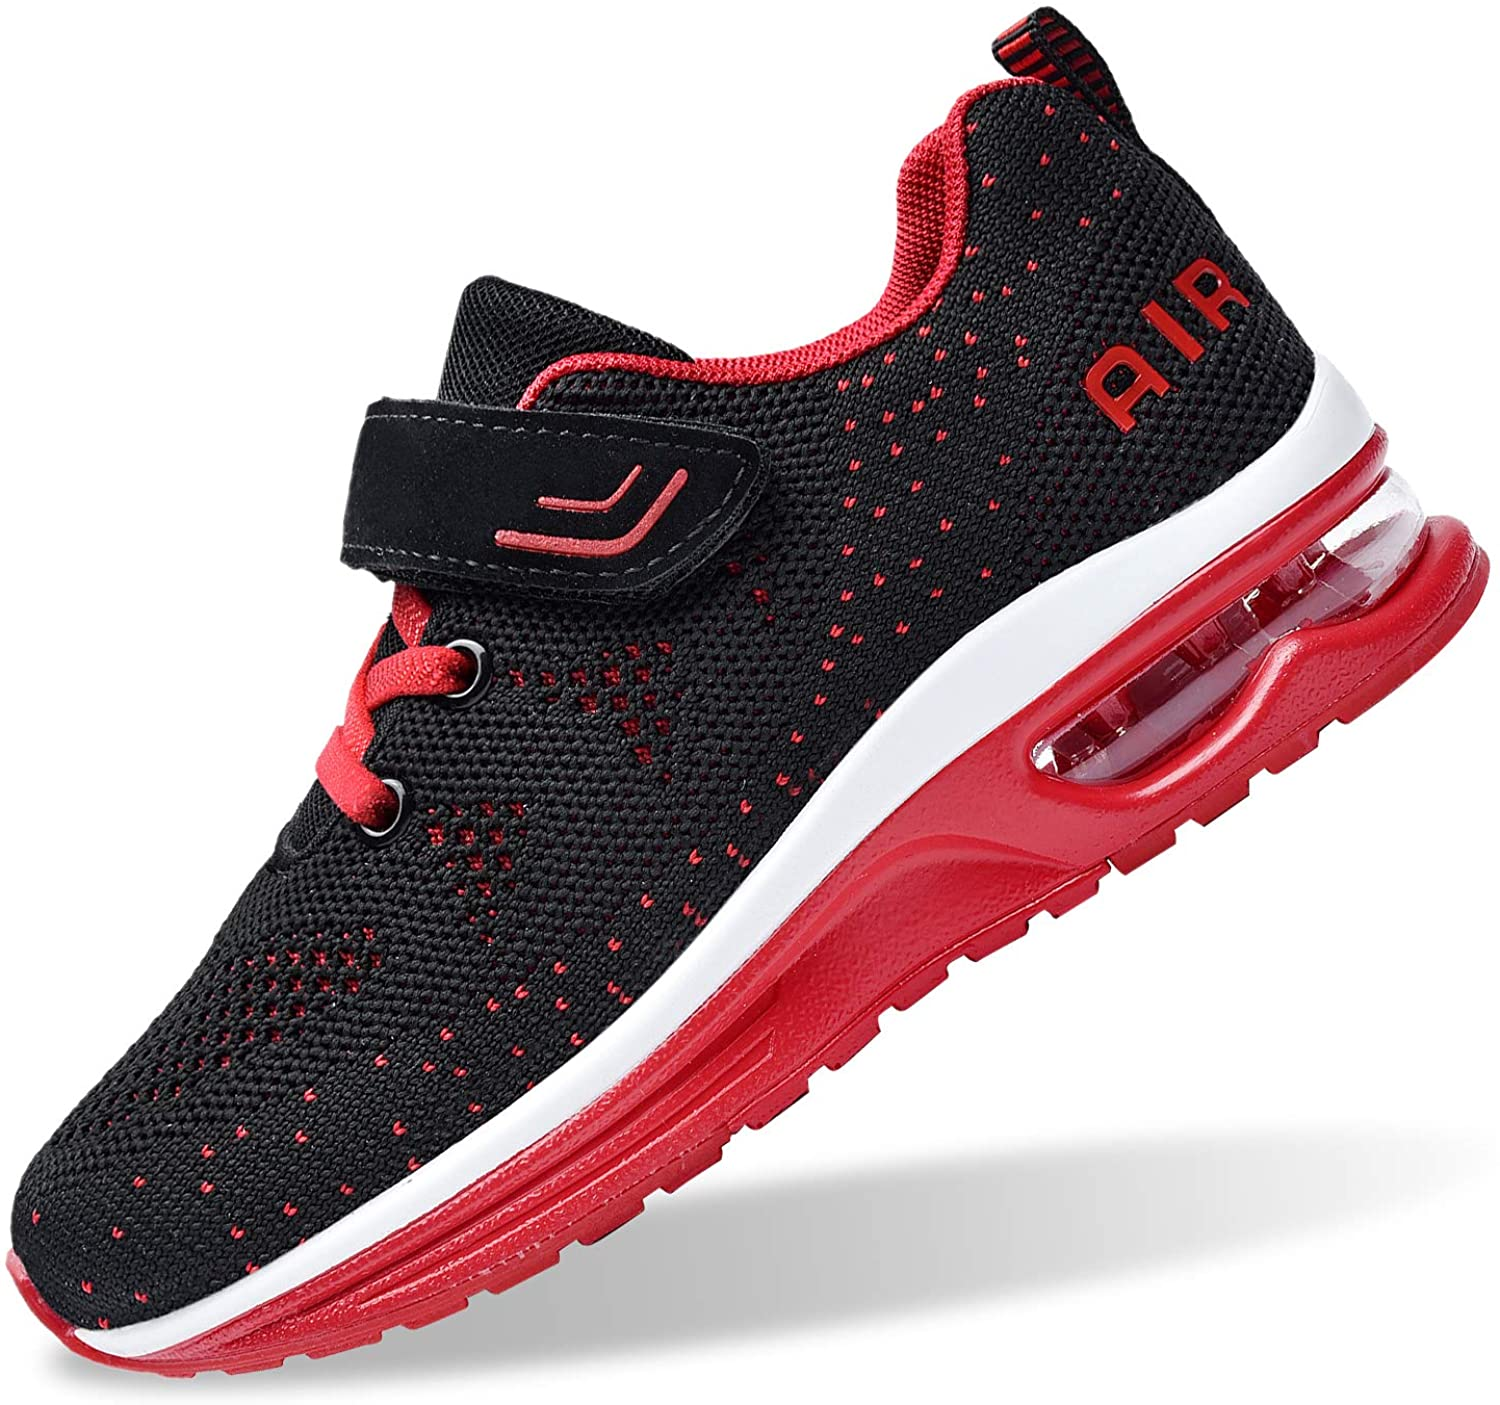 PERSOUL Air Shoes for Boys We OFFer at cheap prices Girls New popularity Sports Children Ath Tennis Kids